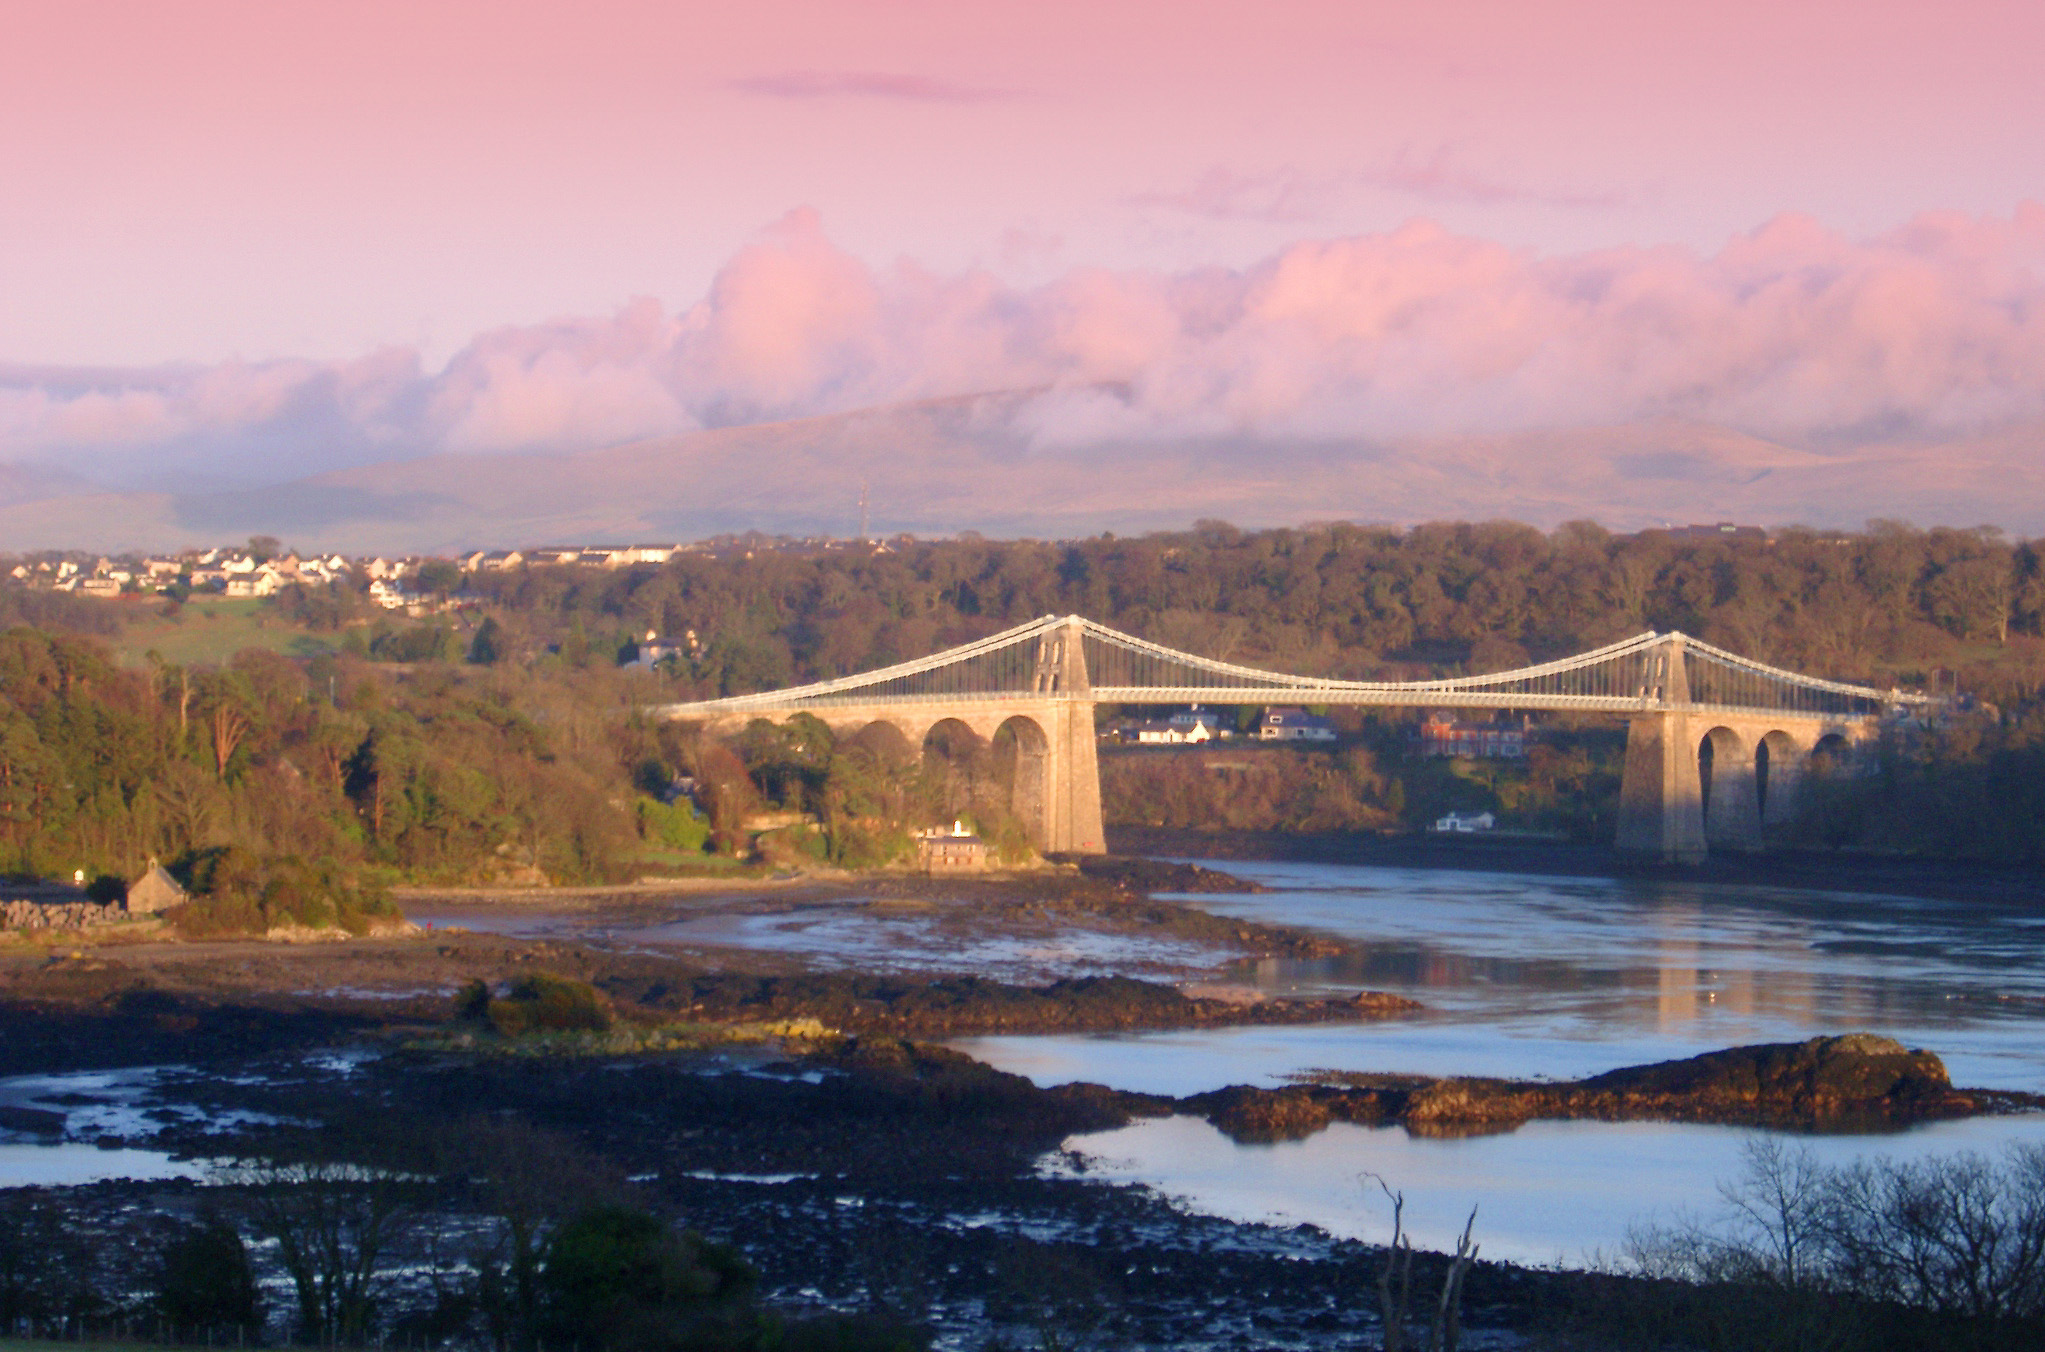 Menai Straits bridge connecting the island of Anglesey to mainland Wales